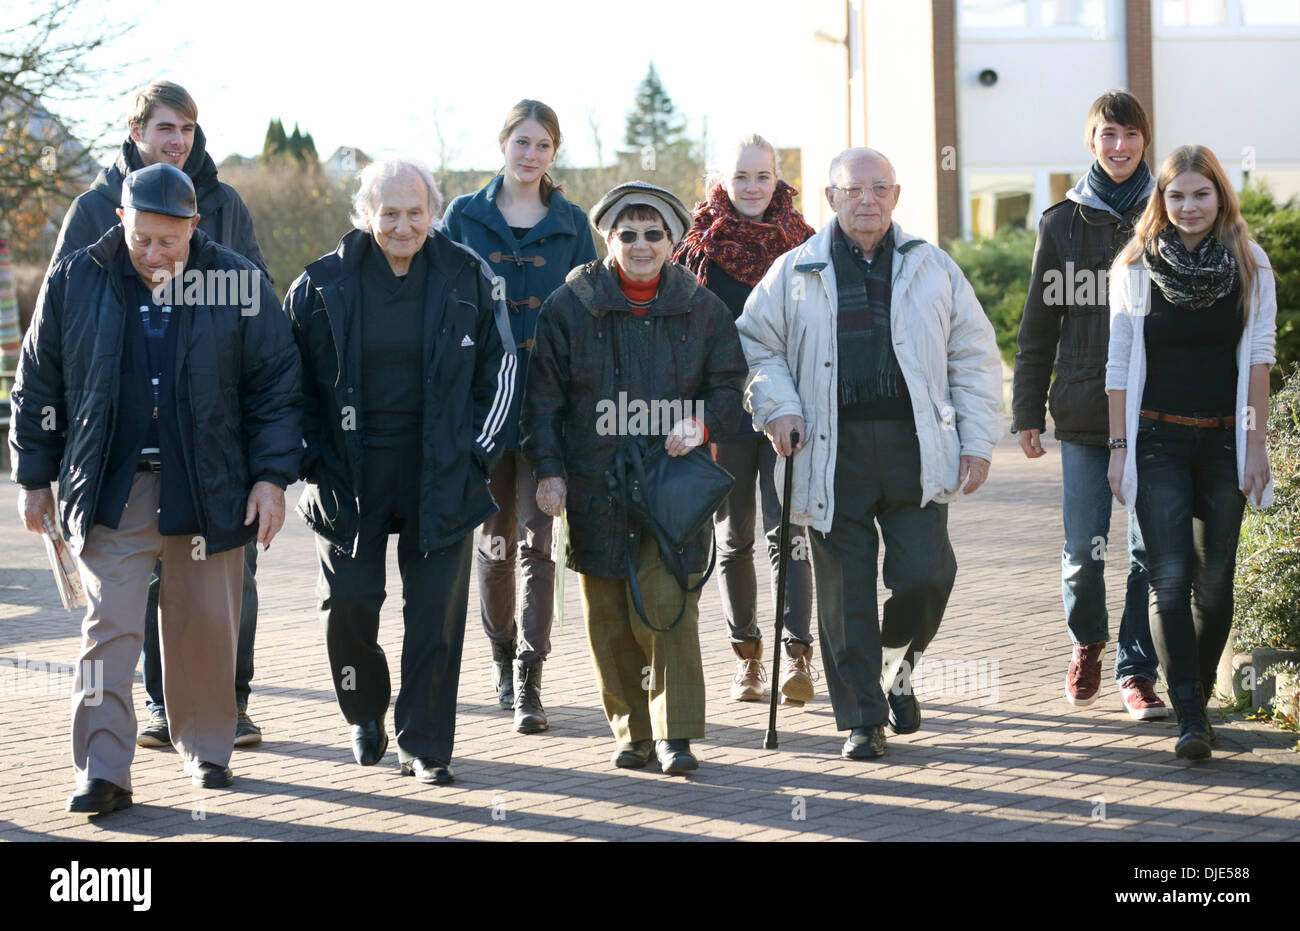 Roevershagen, Germany. 26th Nov, 2013. The four Holocaust survivors (FRONT L-R) Jacov Tsur, Noah Klieger, Batsheva Dagan and Michael Goldmann-Gilead are guests in the Heidetreff in Roevershagen, Germany, 26 November 2013. They were invited to Germany by the project group 'War graves' of the European school Roevershagen and will speak about their memories. Photo: Bernd Wuestneck/dpa/Alamy Live News - Stock Image